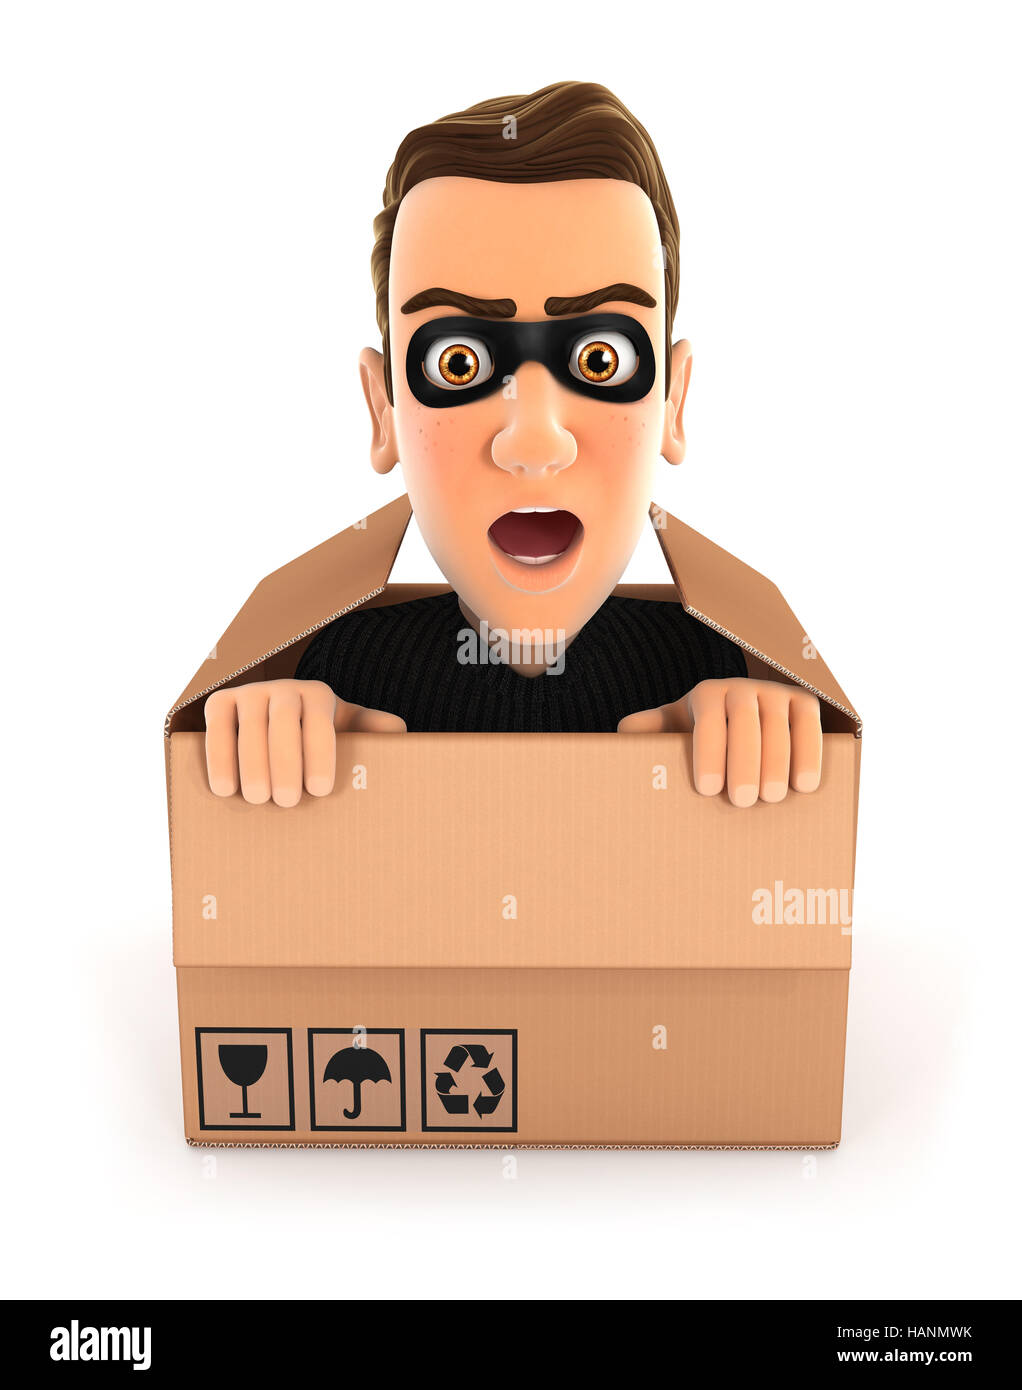 3d thief hiding inside a cardboard box, illustration with isolated white background Stock Photo